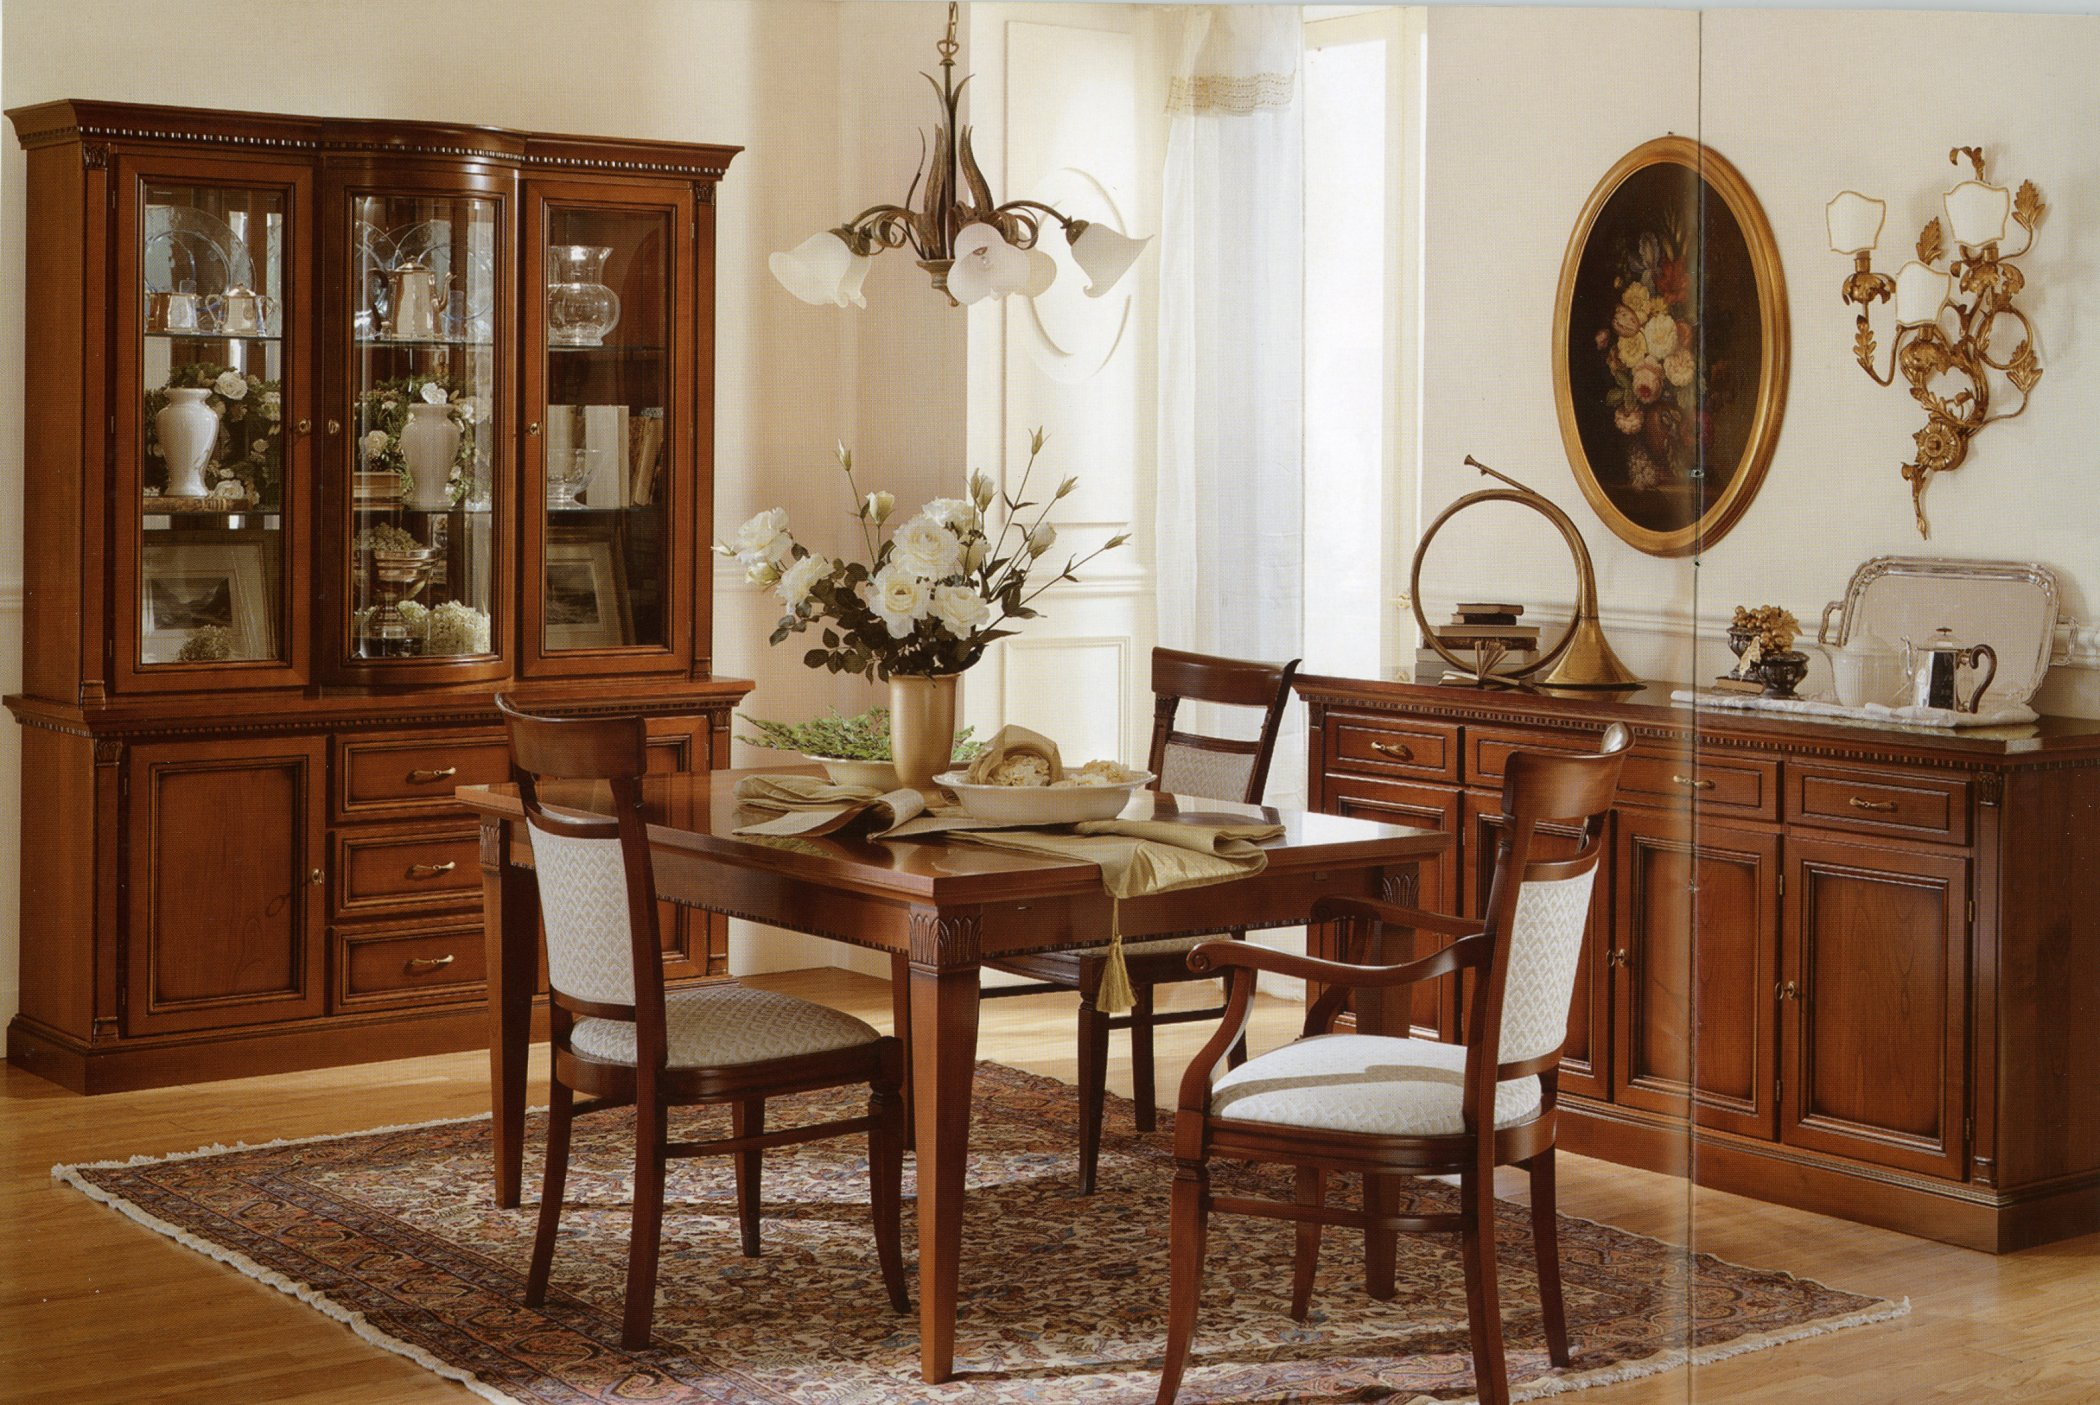 dining_room3 Dining Room Design Ideas